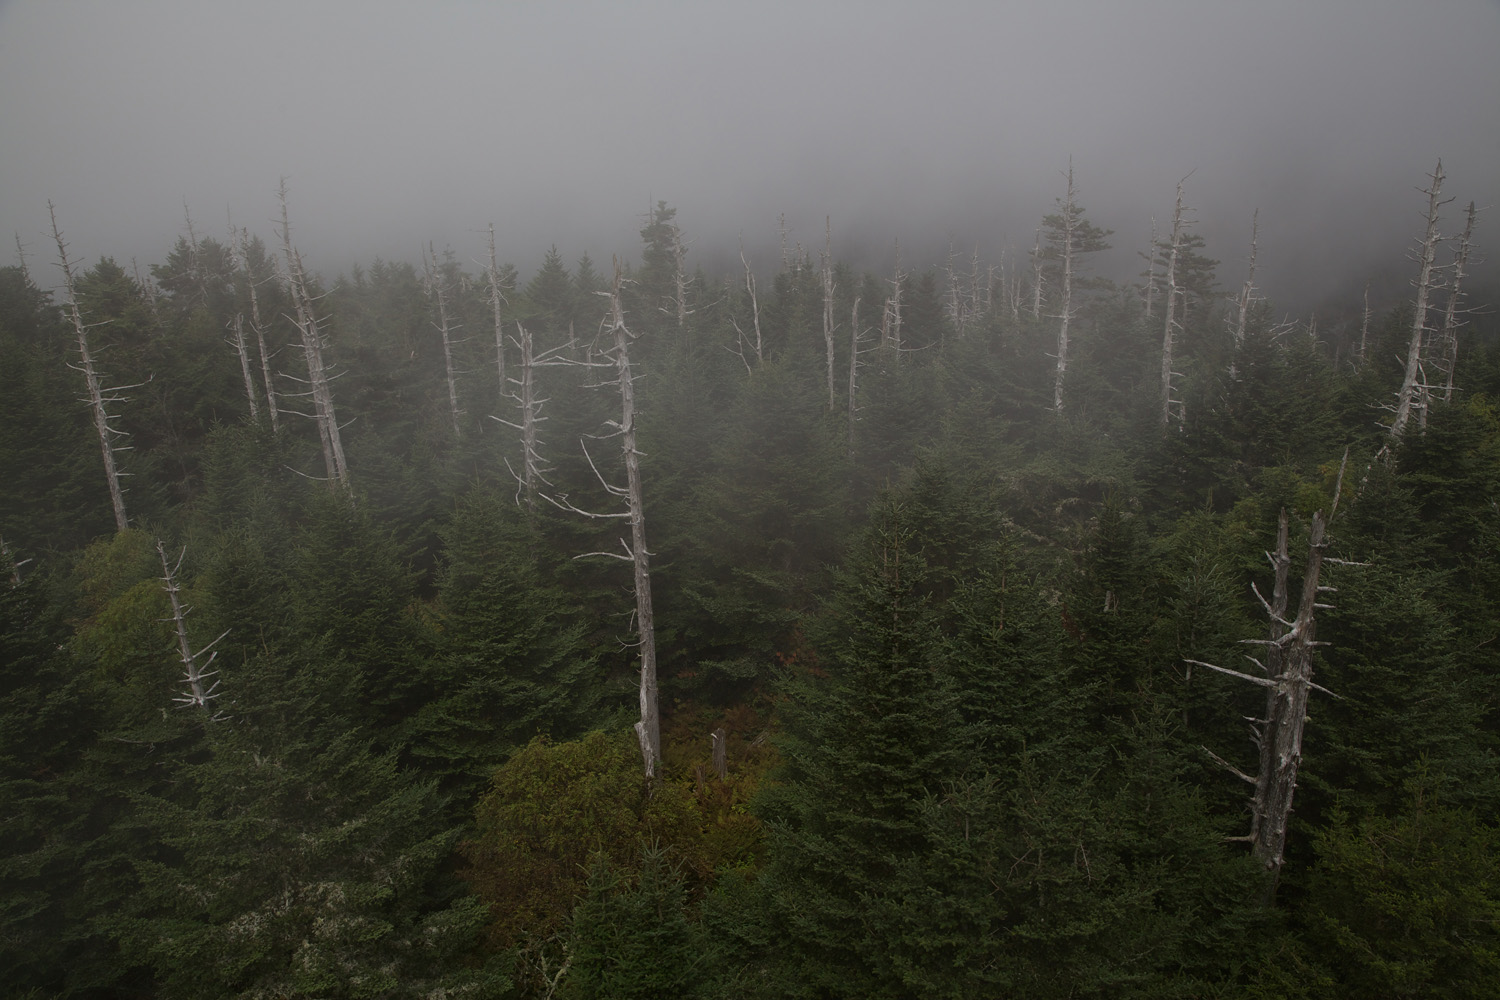 Foggy forest from Clingman's Dome Observation Tower